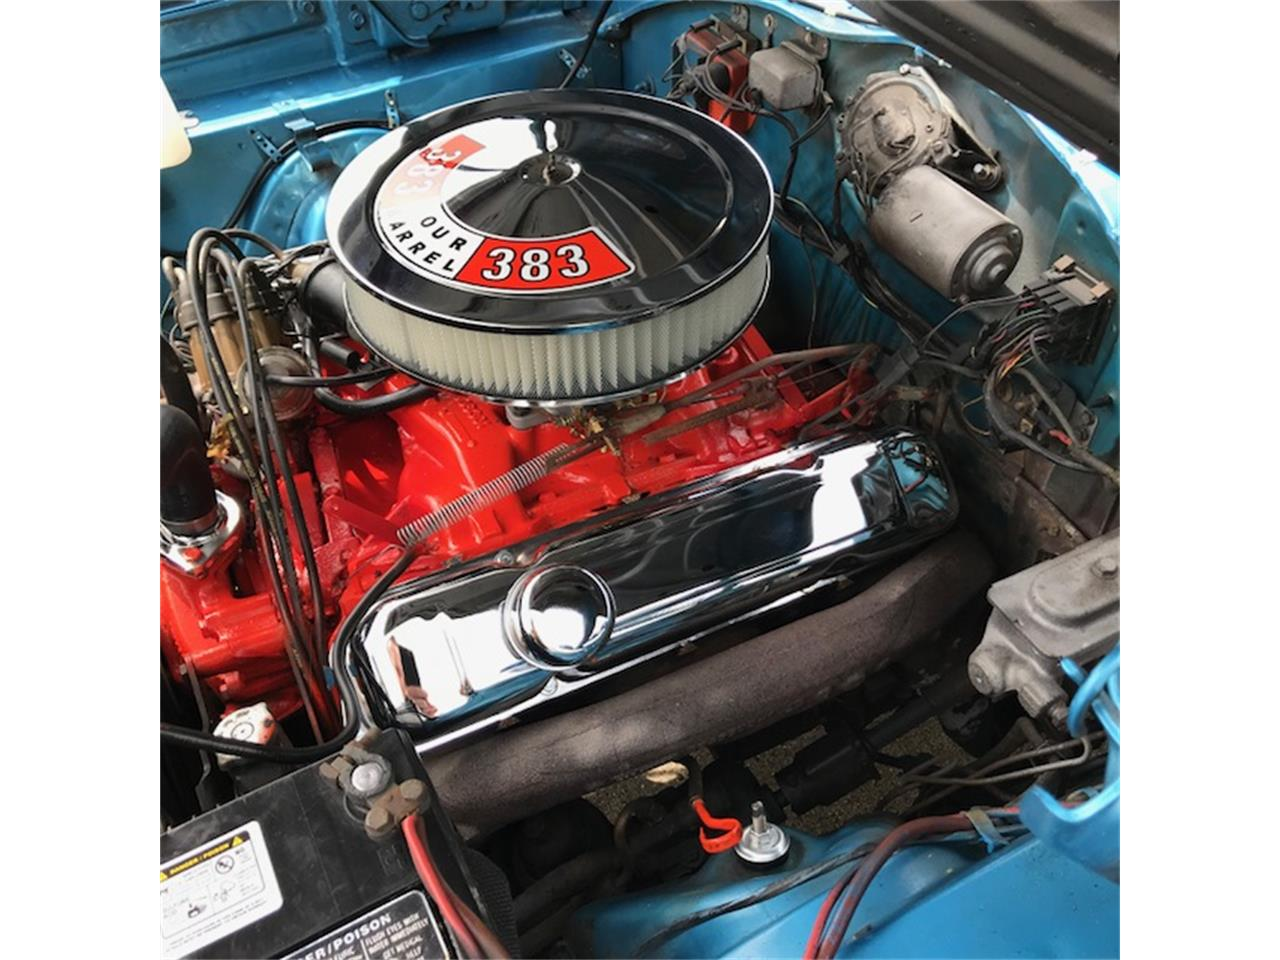 Large Picture of '69 Road Runner located in Fort Myers, Macomb, MI Florida - $32,900.00 Offered by More Muscle Cars - OJ60